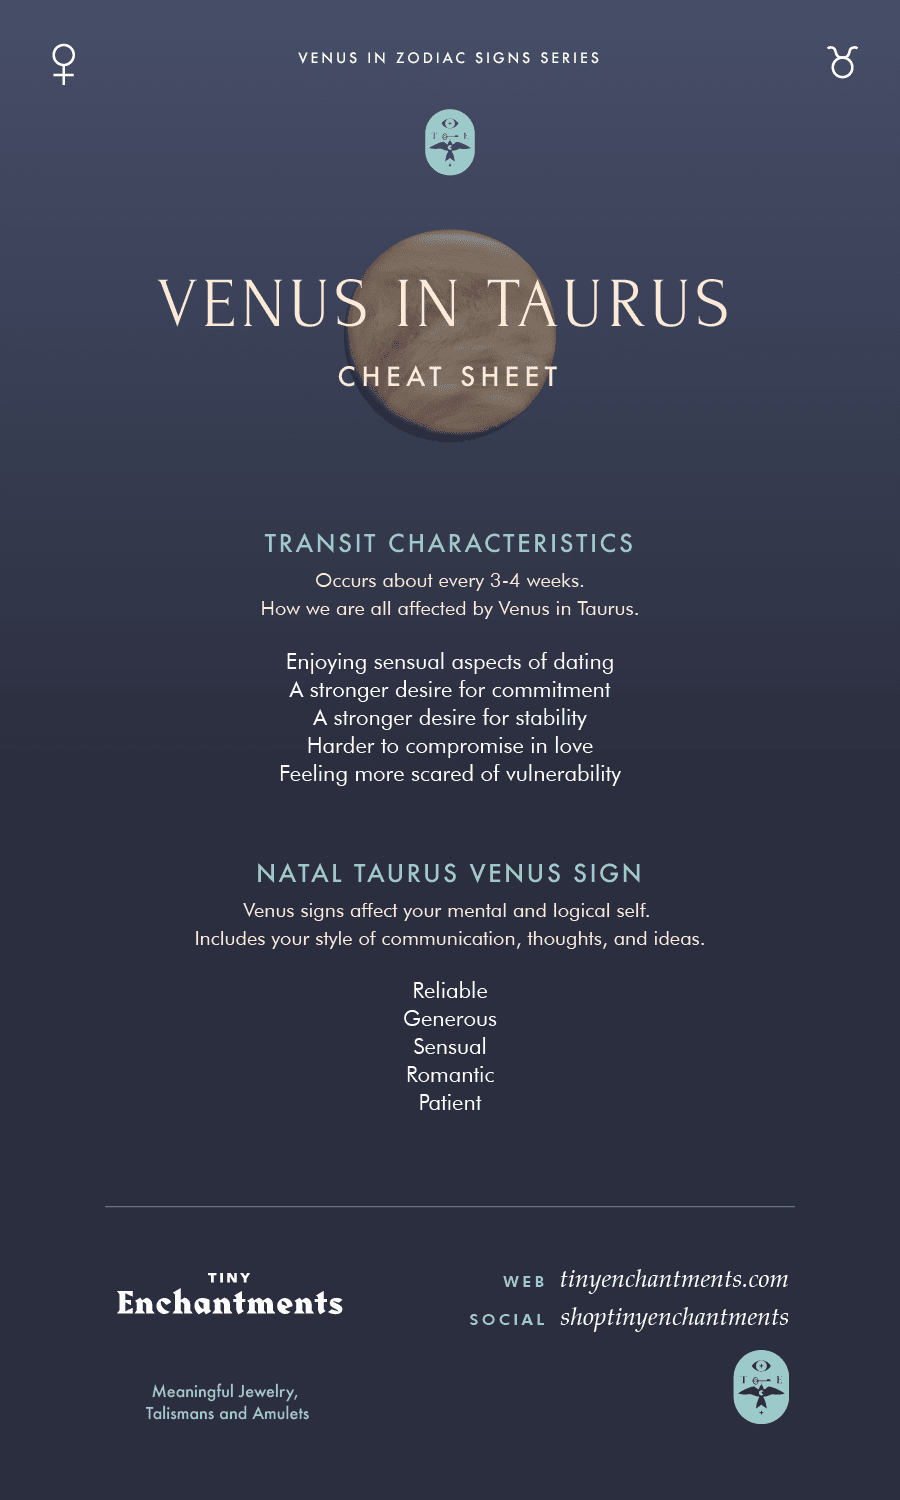 Venus in Taurus Transit / Taurus Venus Sign Personality Meanings Infographic